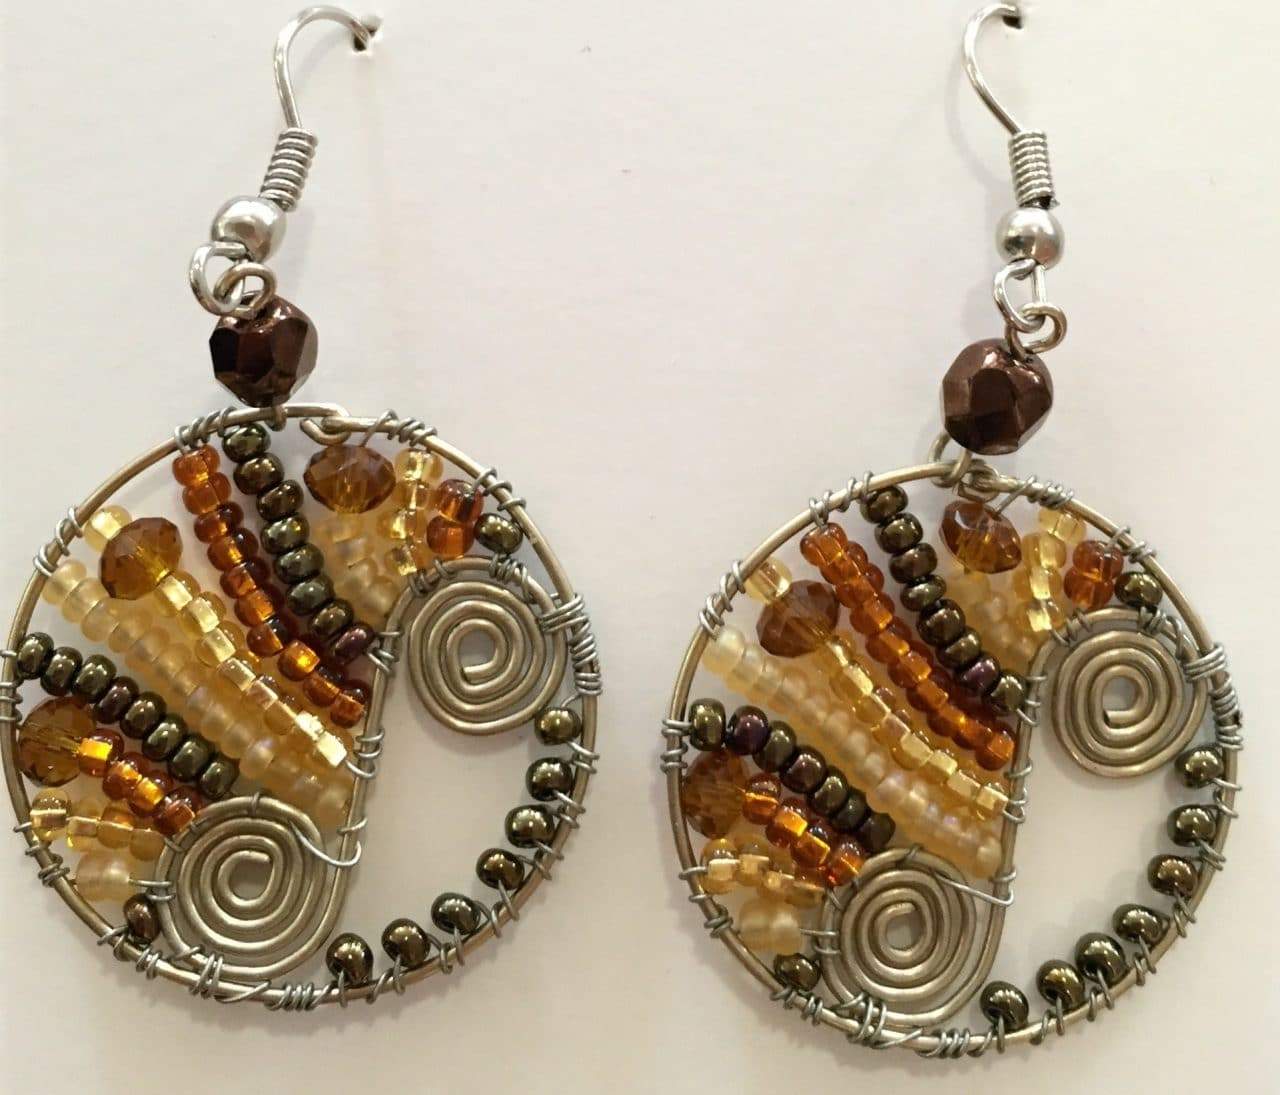 Flowing Spiral Circle Earrings - Golds